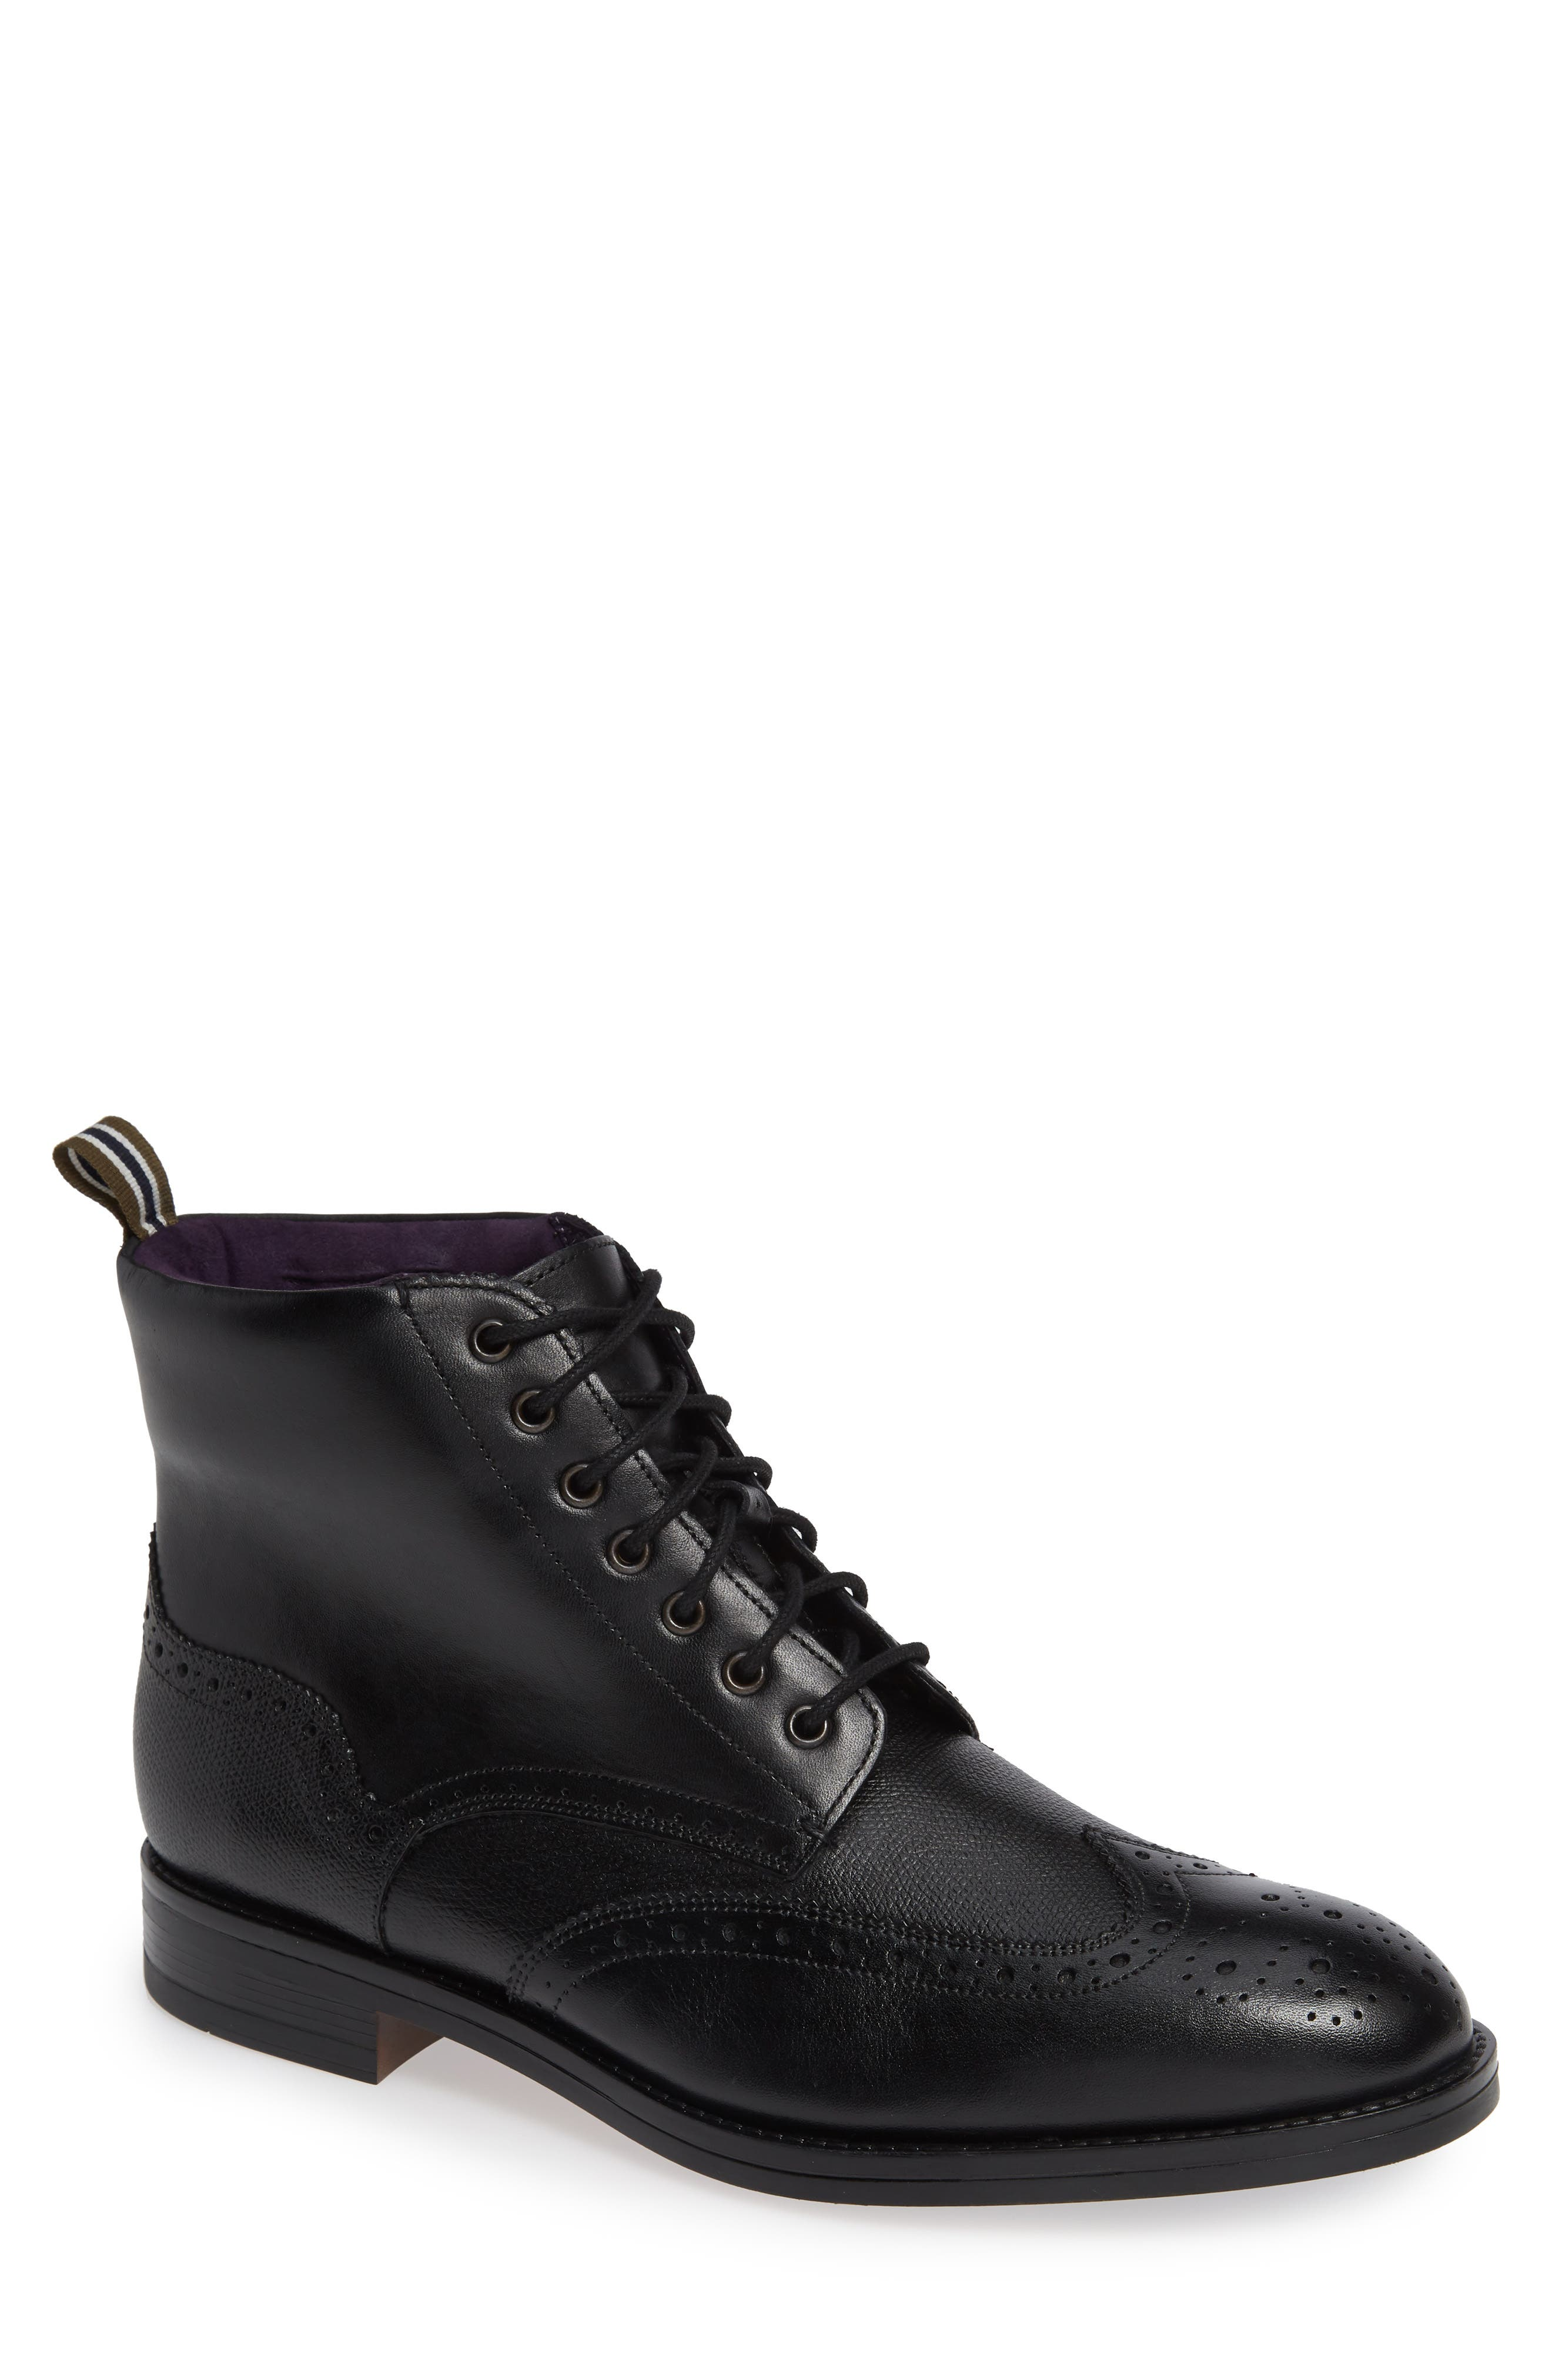 Twrens Wingtip Boot,                         Main,                         color, BLACK LEATHER